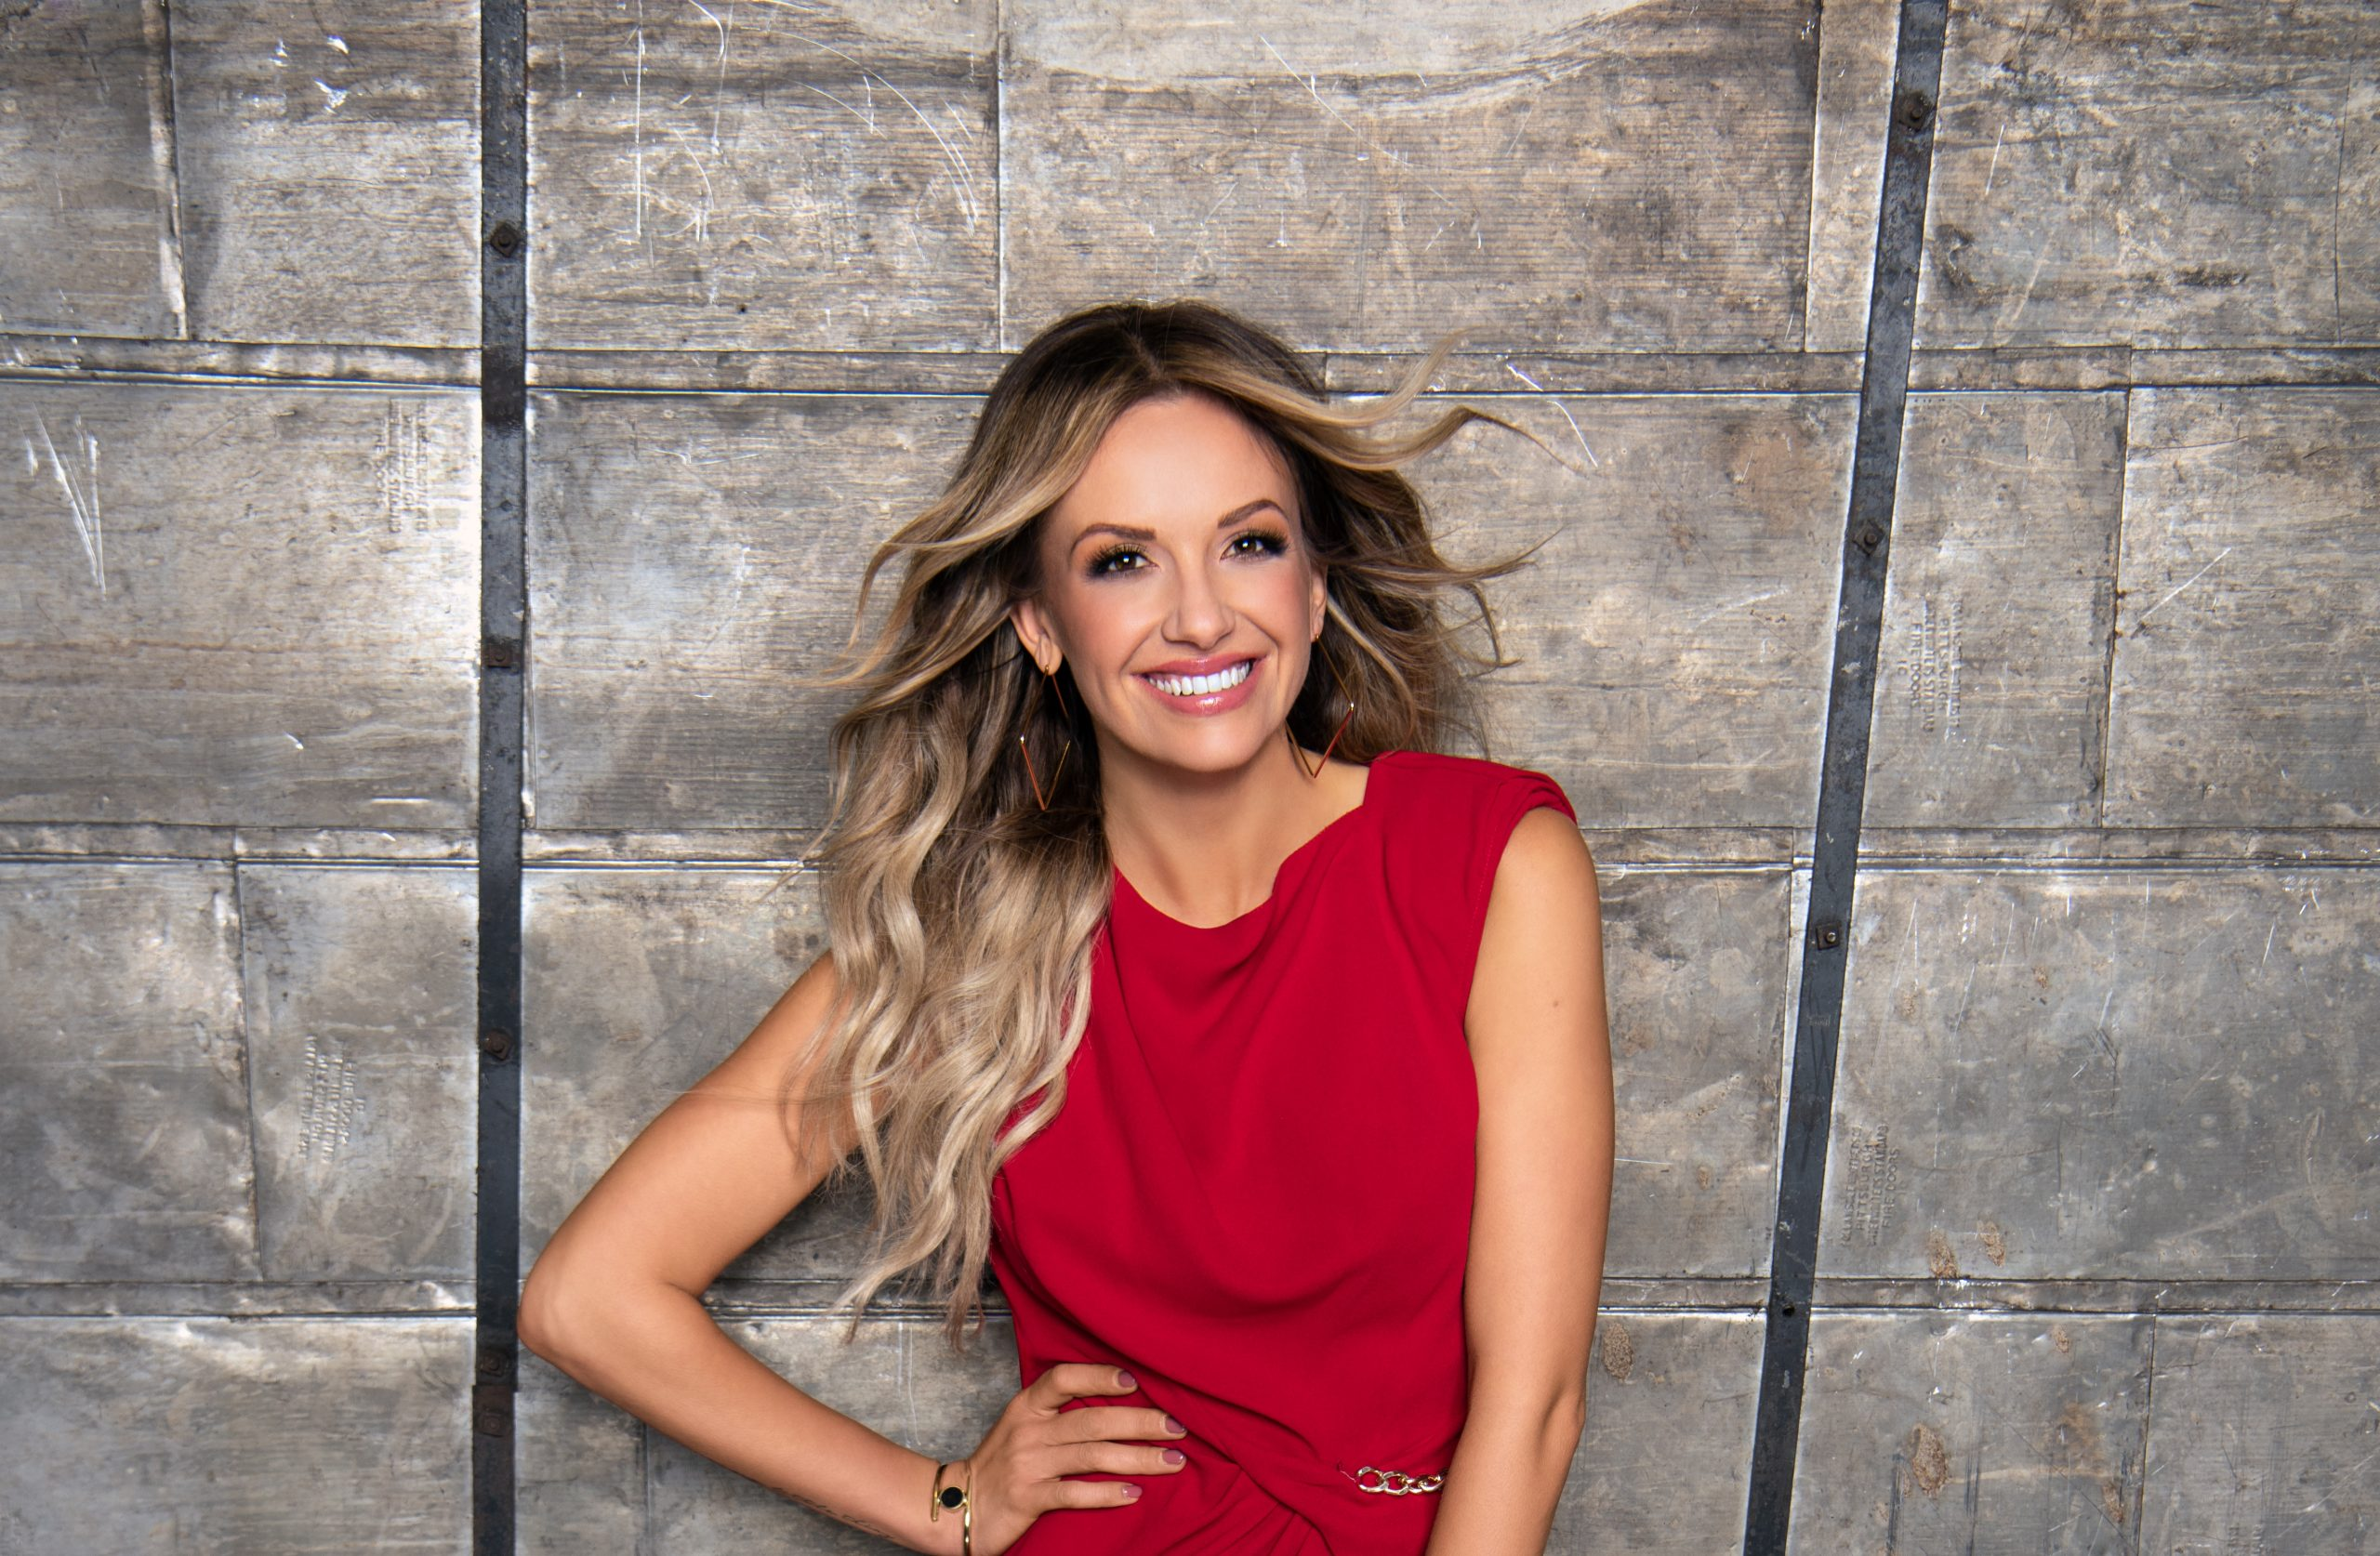 Carly Pearce and Chris Stapleton receive CMA nominations